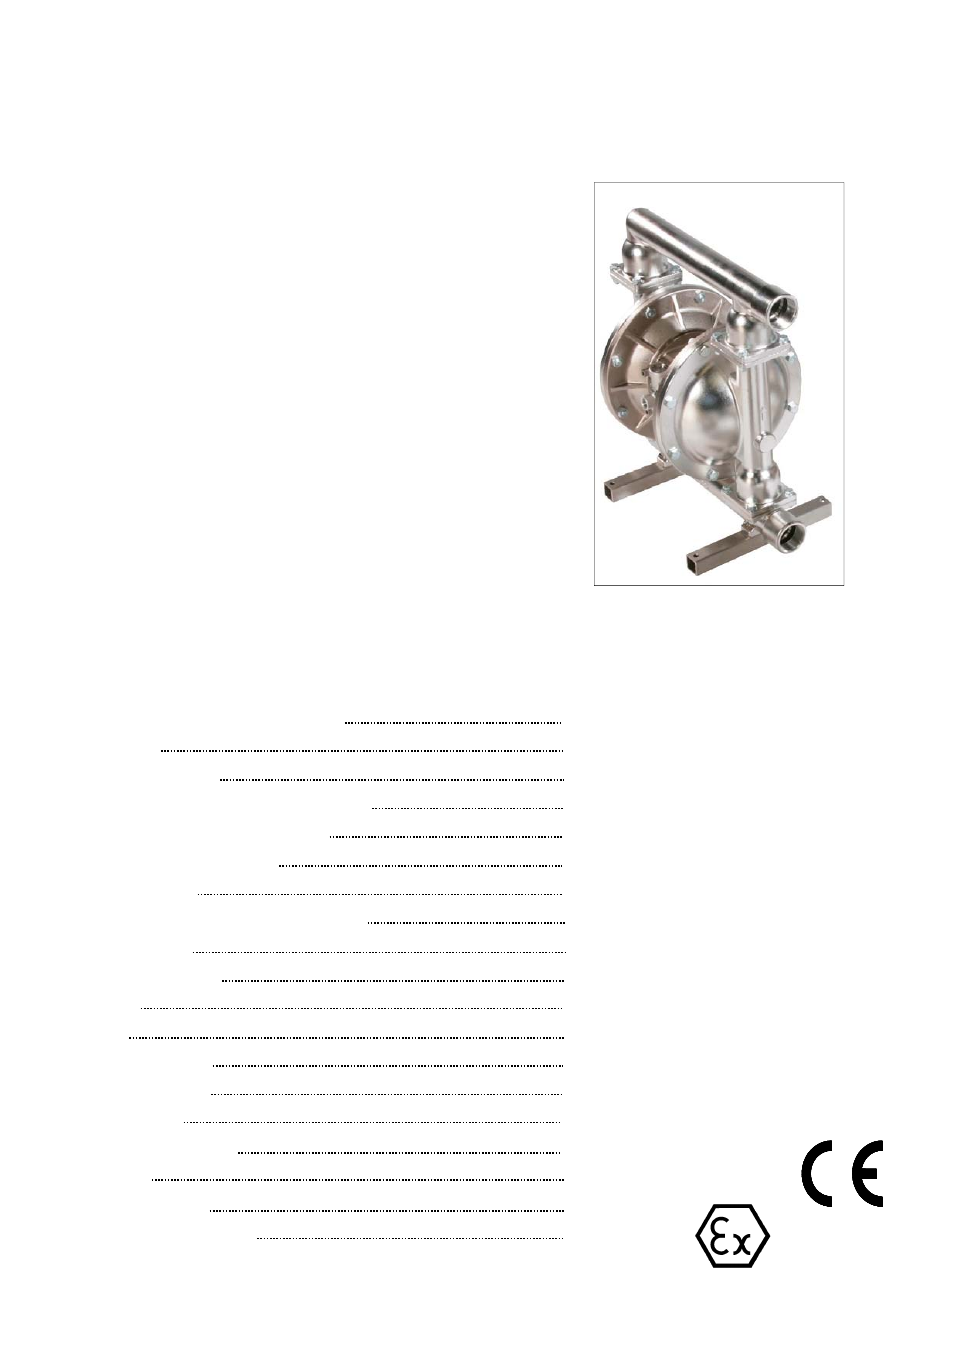 Blagdon pump x40 fda user manual 12 pages also for b40 fda ccuart Images